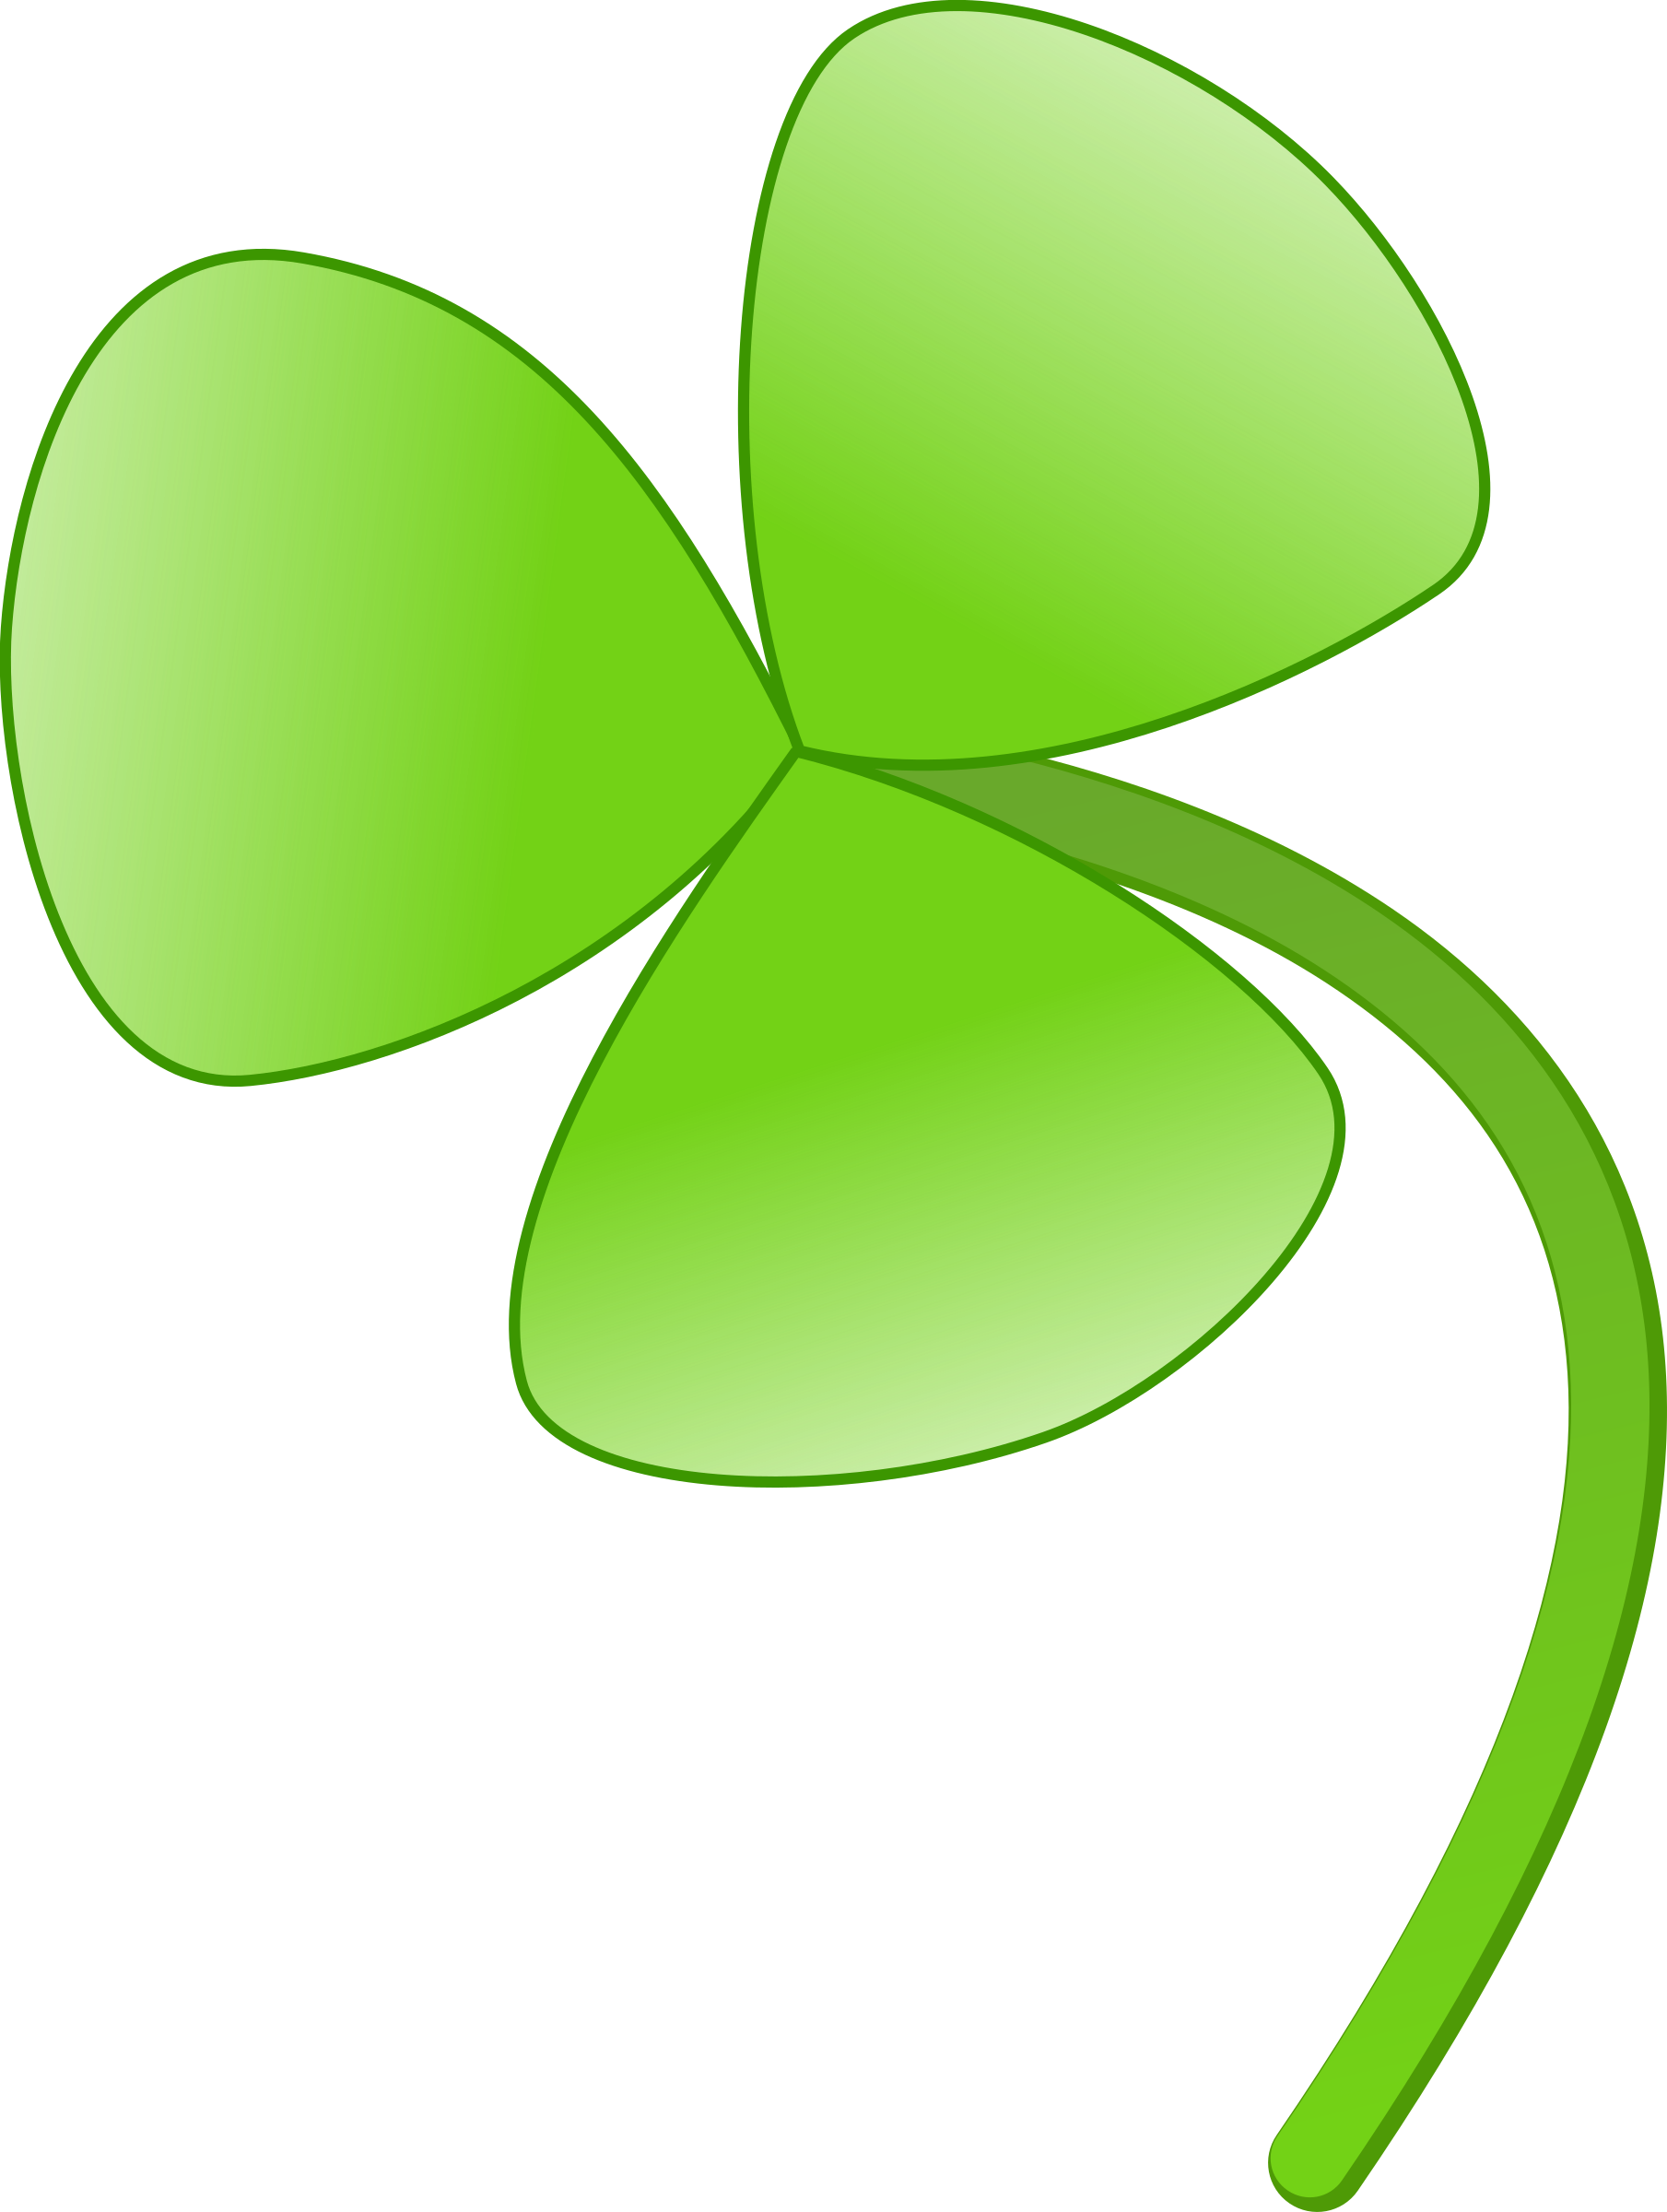 three leaves clover by mireille